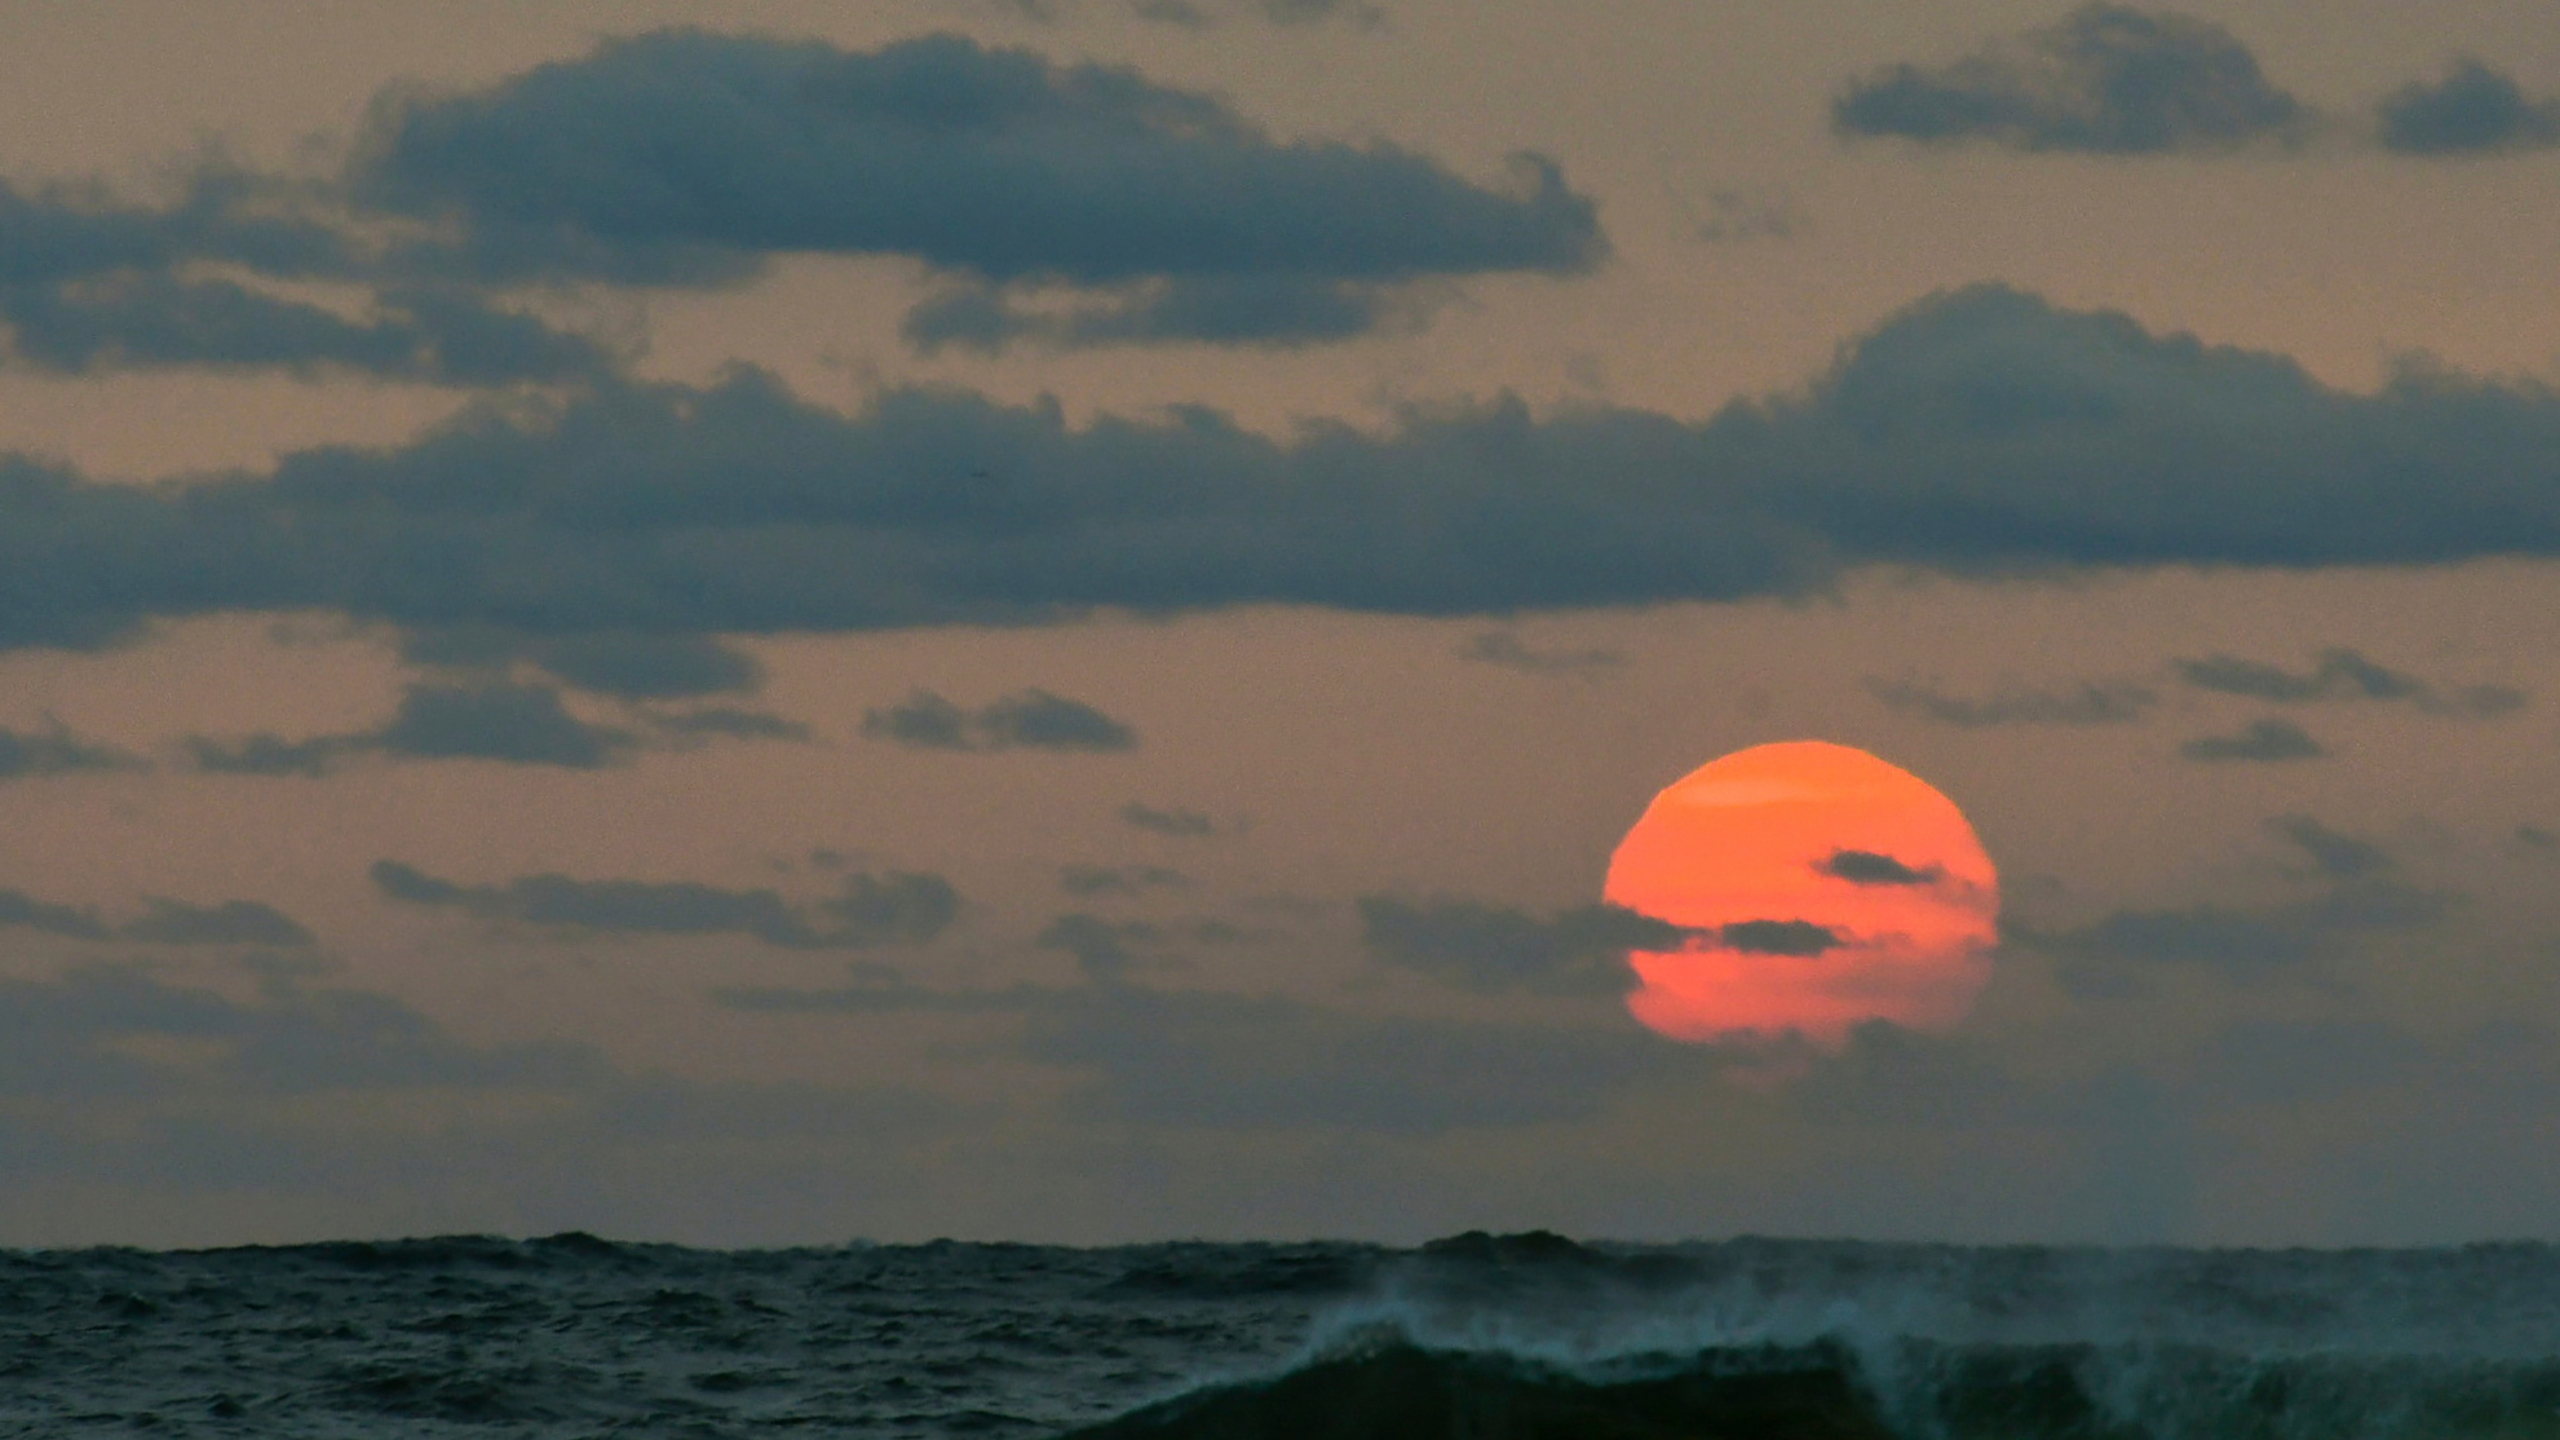 This photo taken at sunrise from Surf City on Long Beach Island in New Jersey shows the sun shrouded in smoke and brown haze Tuesday, Sept. 15, 2020. (Elizabeth Laird via AP)